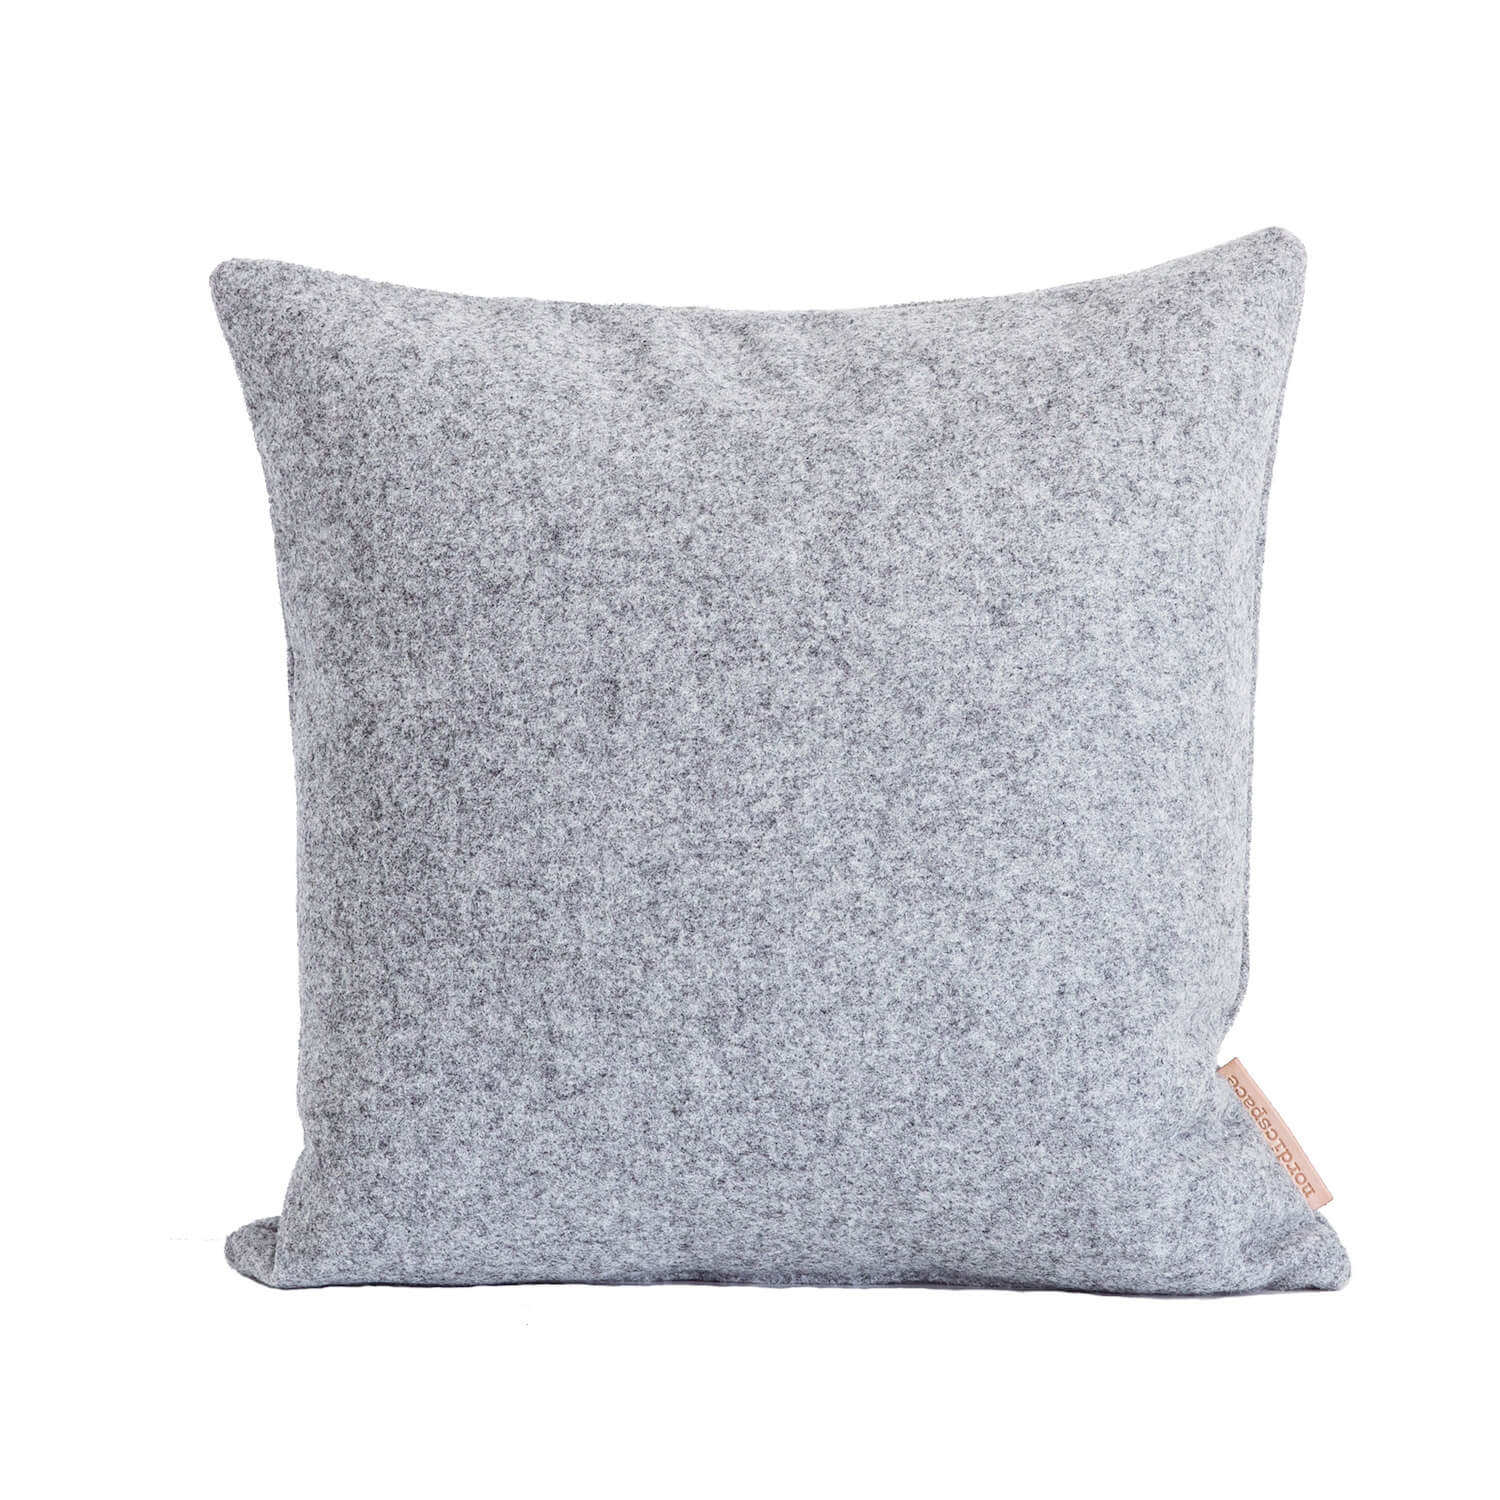 est living the est edit nordicspace pillow